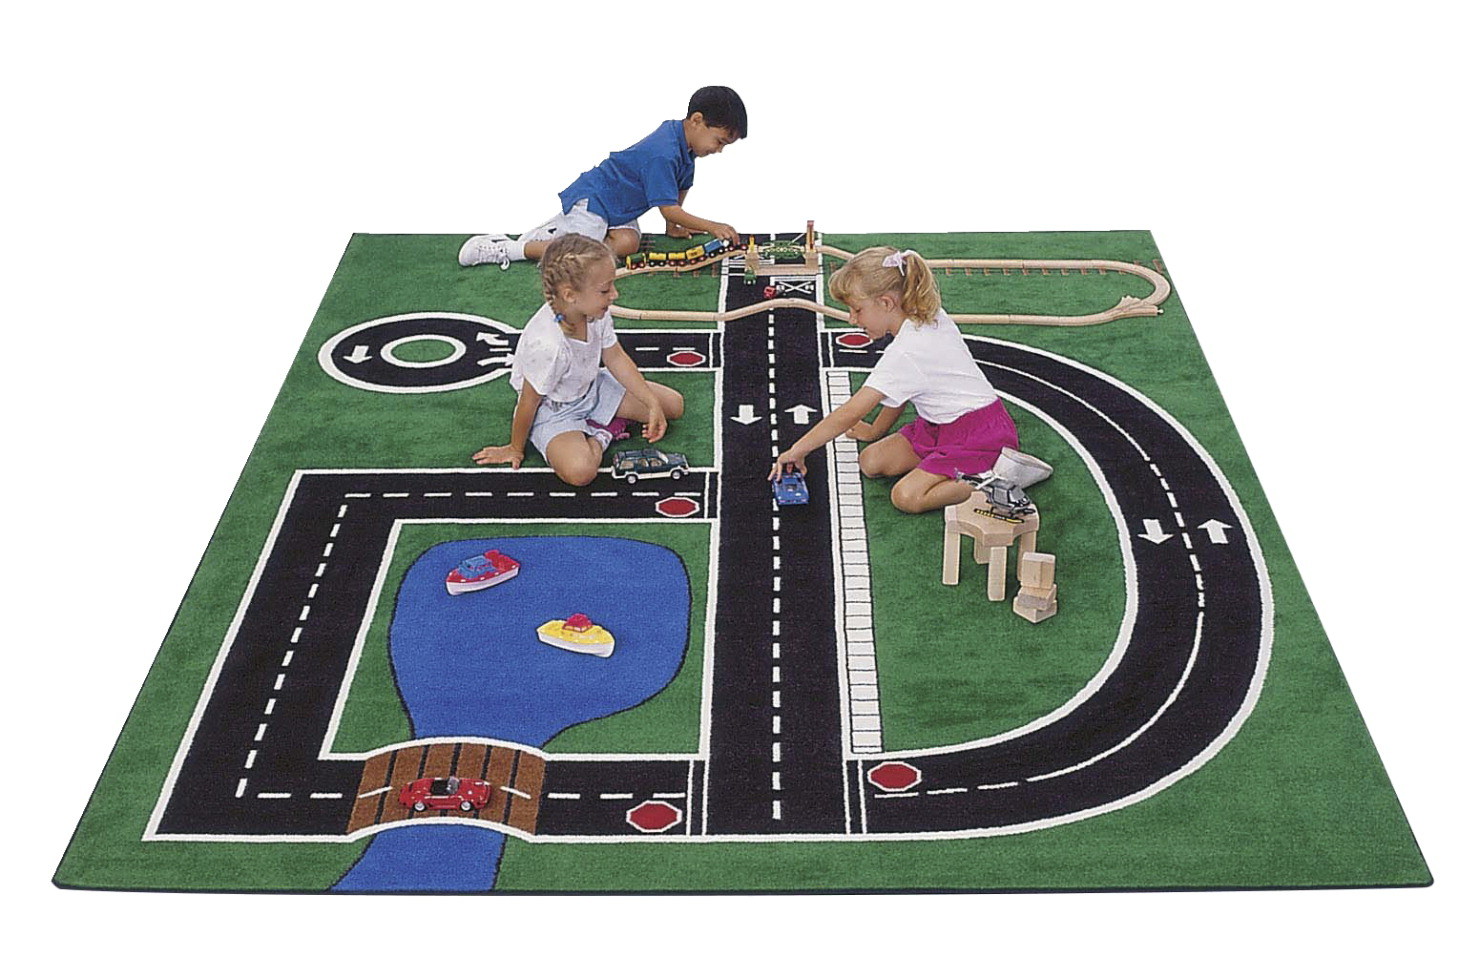 Carpets For Kids Neighborhood Capet, 5 Feet 10 Inches x 8 Feet 4 Inches, Rectangle